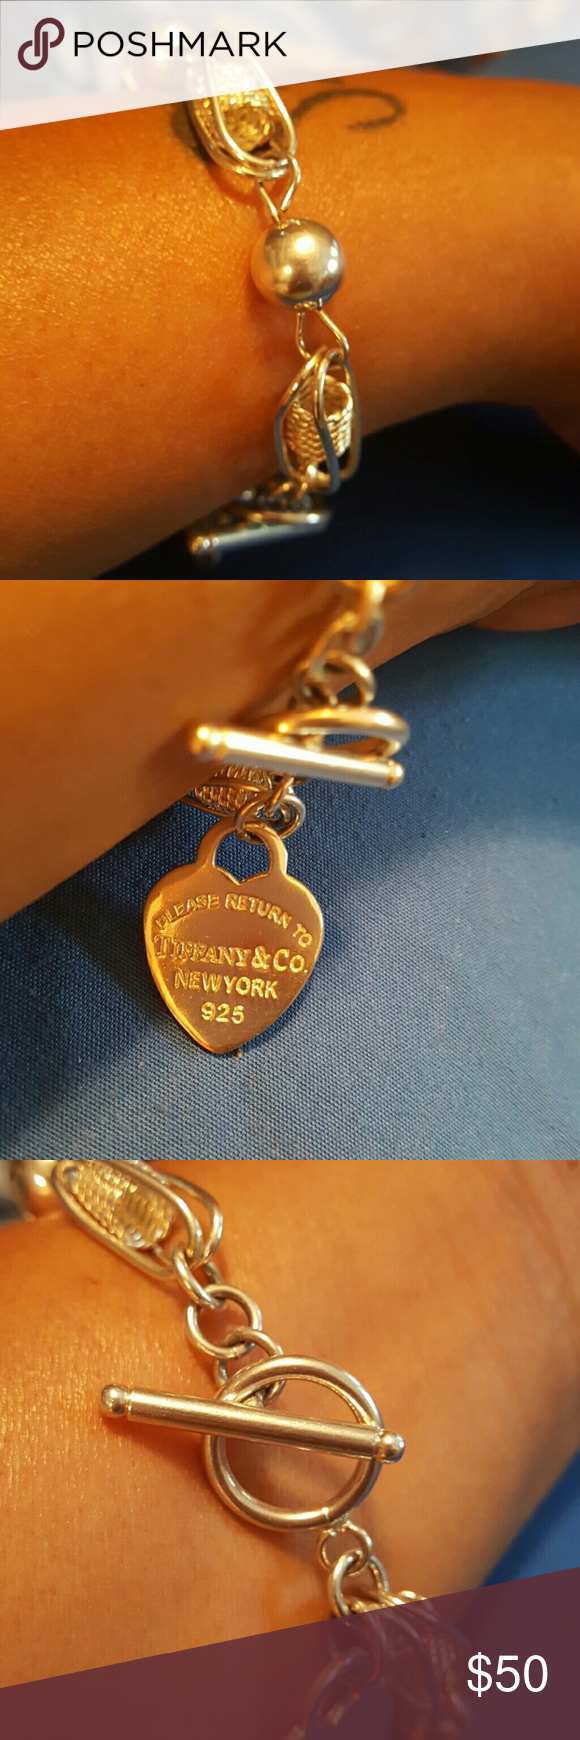 Tiffany bracelet Please read before purchase. Don't know if it's real. Purchased from the pawn shop. Willing to trade. Jewelry Bracelets